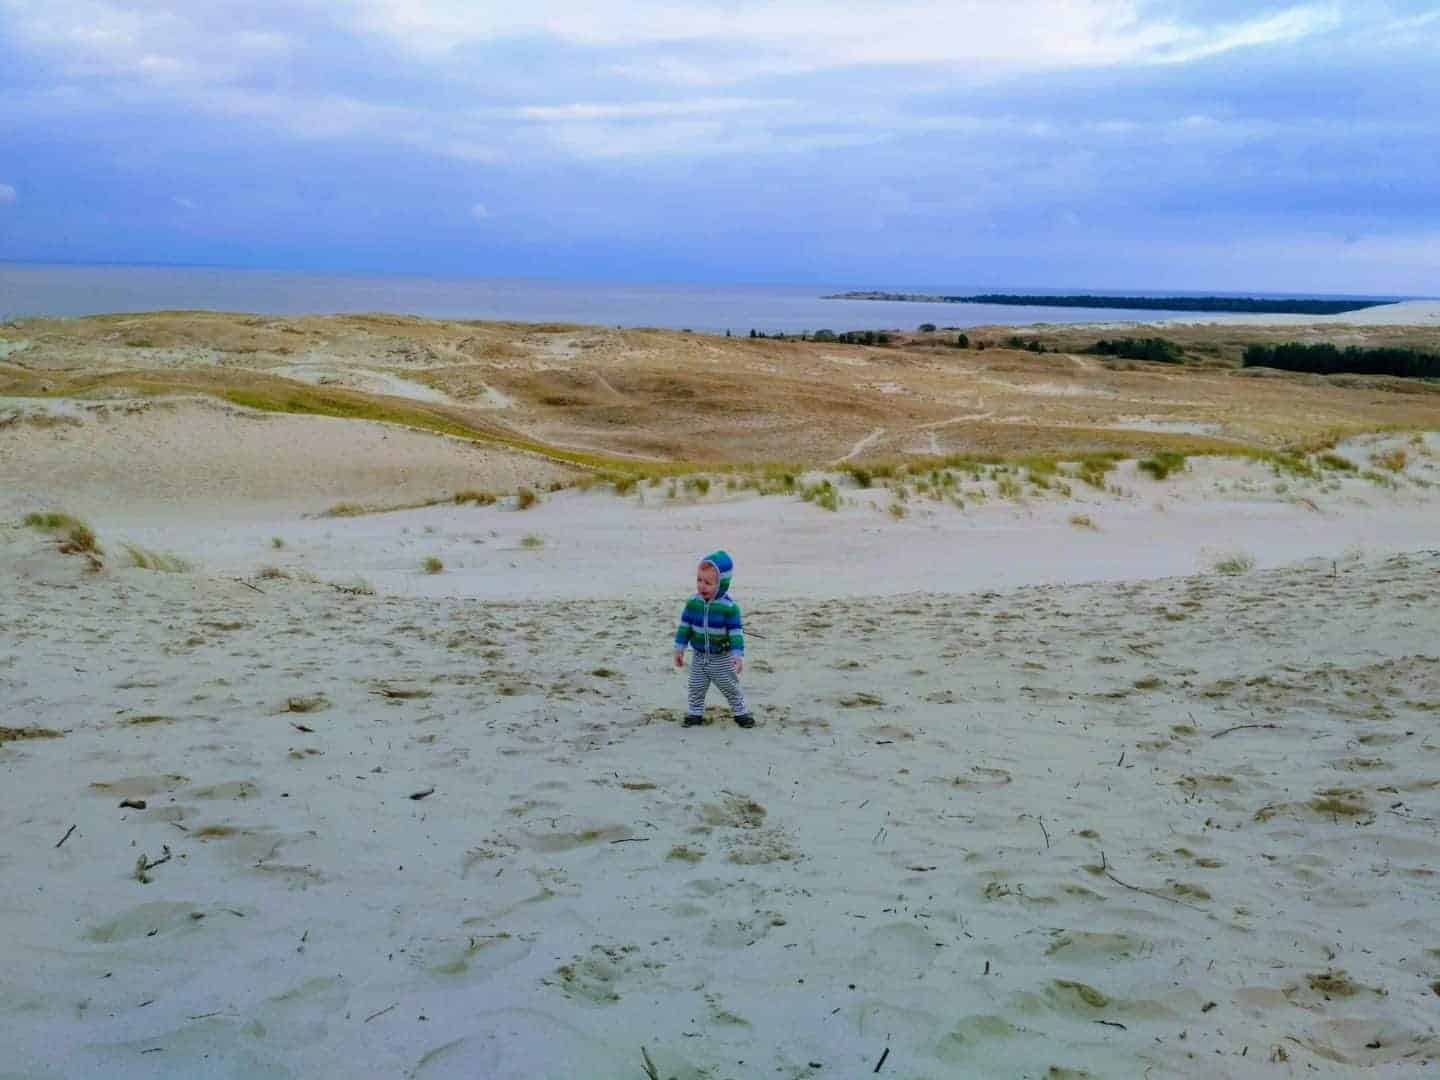 Mark in Curonian Spit dunes in August